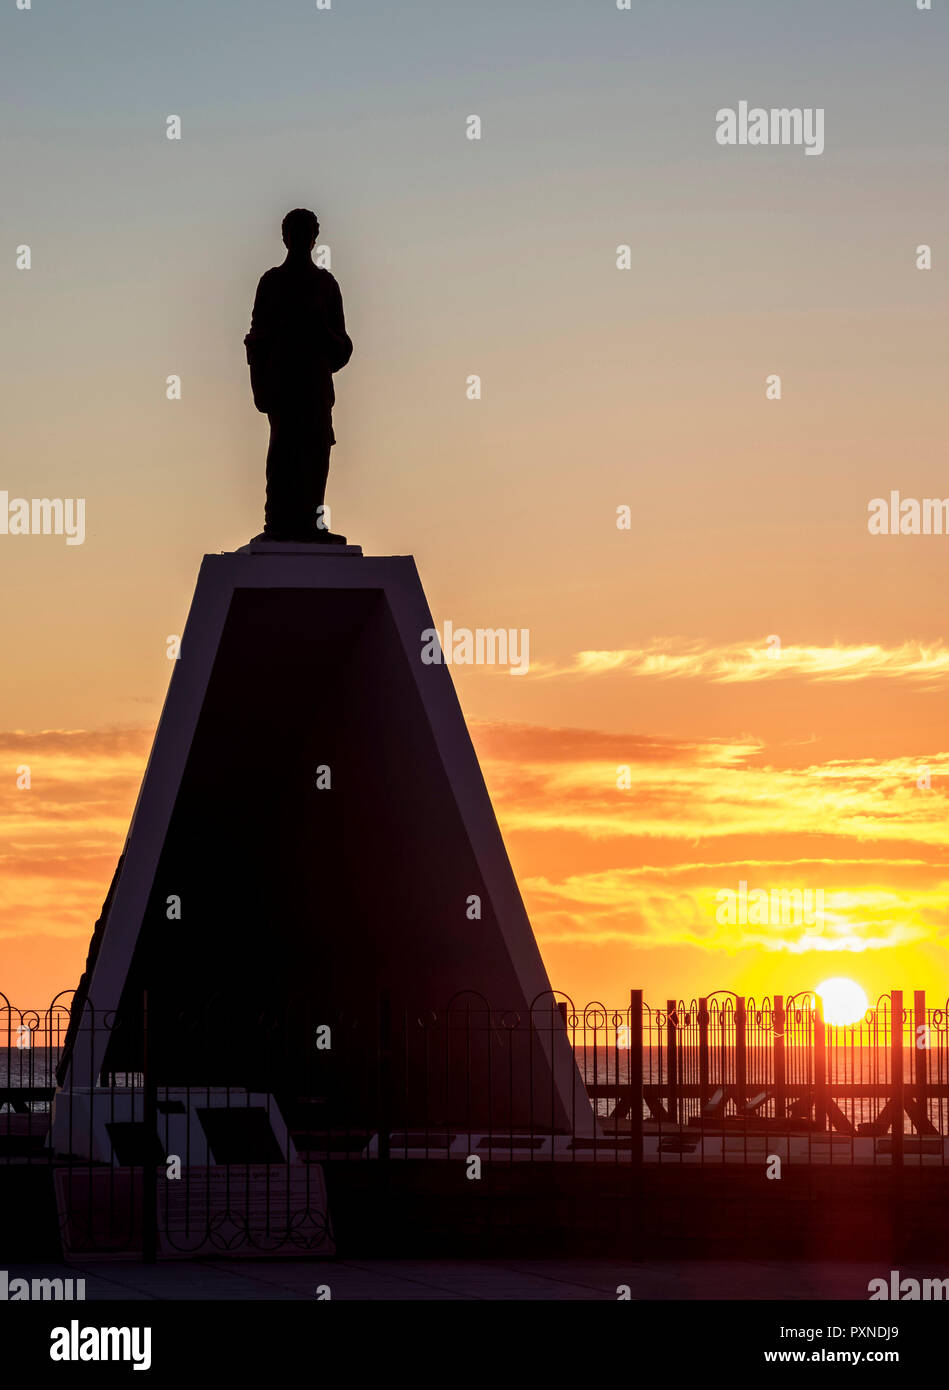 Monument to the Welsh Settlers at sunrise, Puerto Madryn, The Welsh Settlement, Chubut Province, Patagonia, Argentina - Stock Image